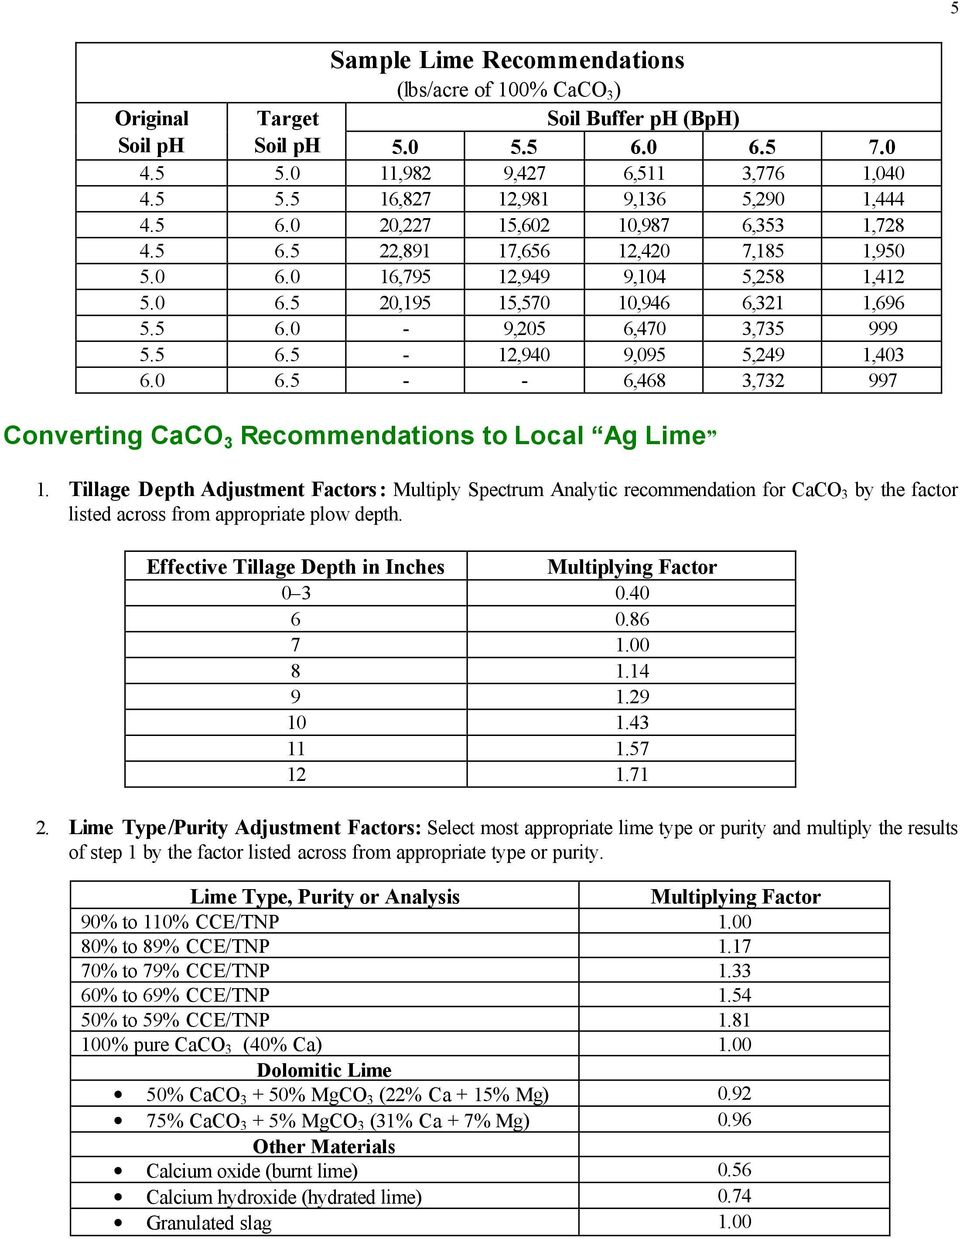 0 6.5 - - 6,468 3,732 997 Converting CaCO 3 Recommendations to Local Ag Lime 1.